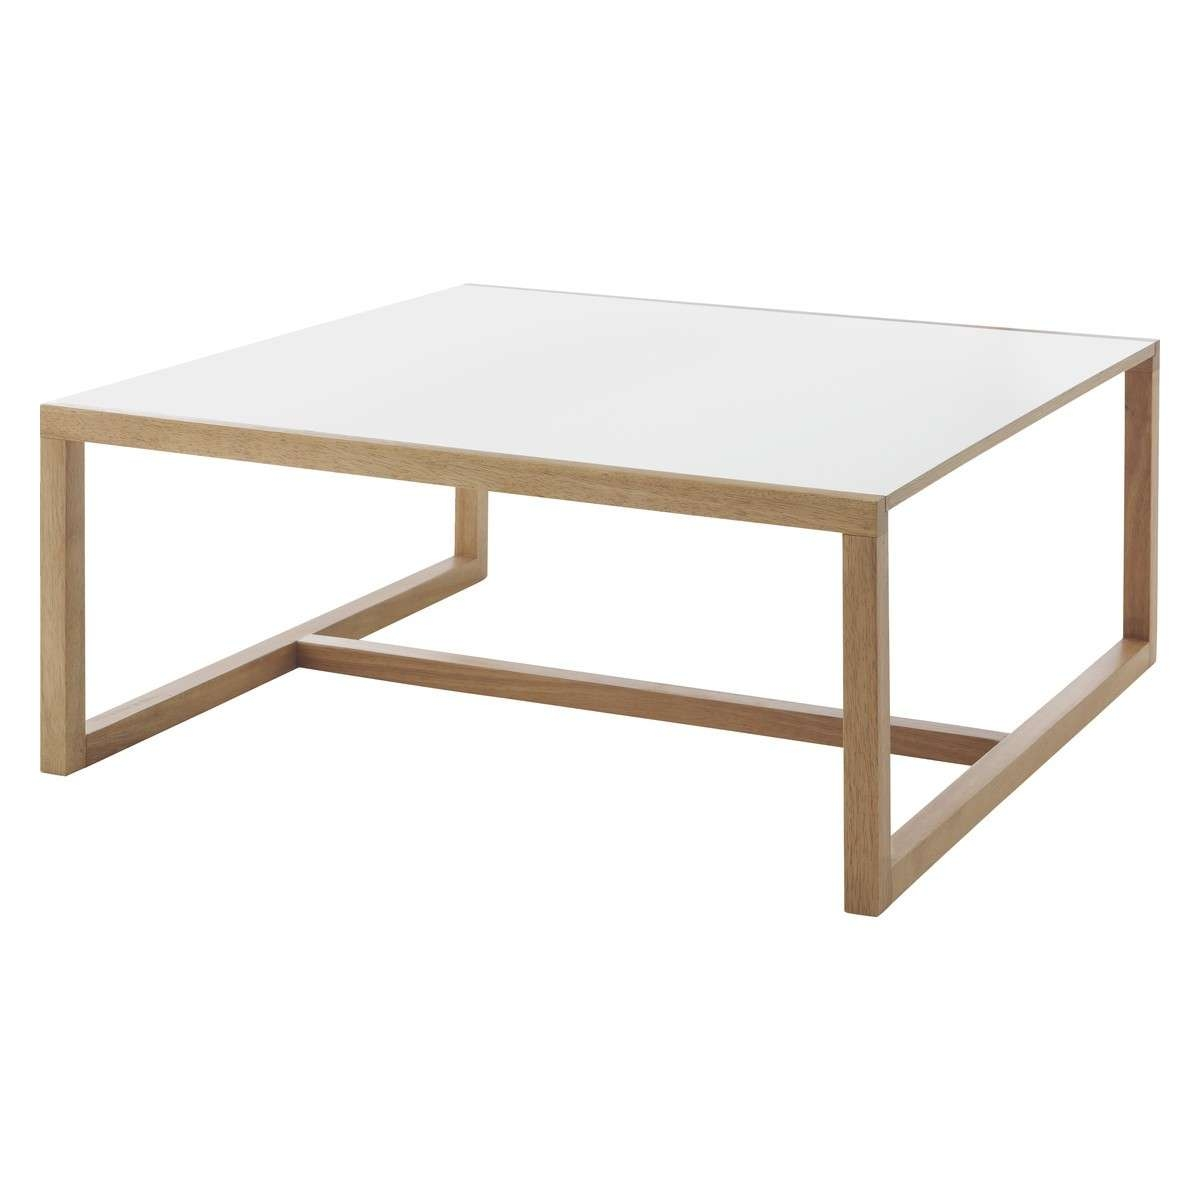 Buy Now At Habitat Uk For Well Liked White Square Coffee Table (View 5 of 20)